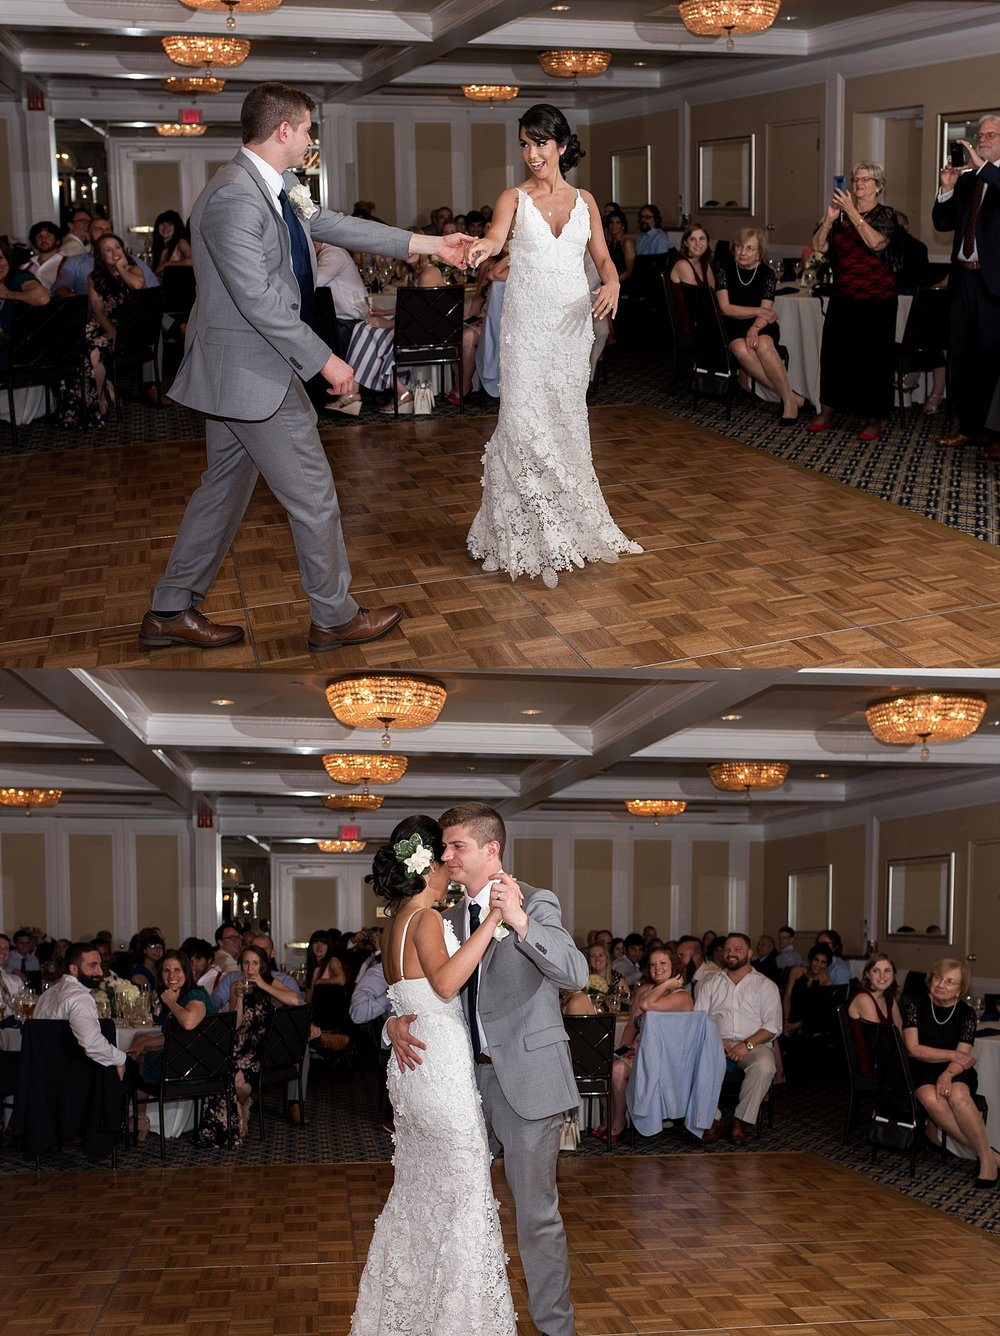 bride and groom first dance at avon old farms hotel wedding venue